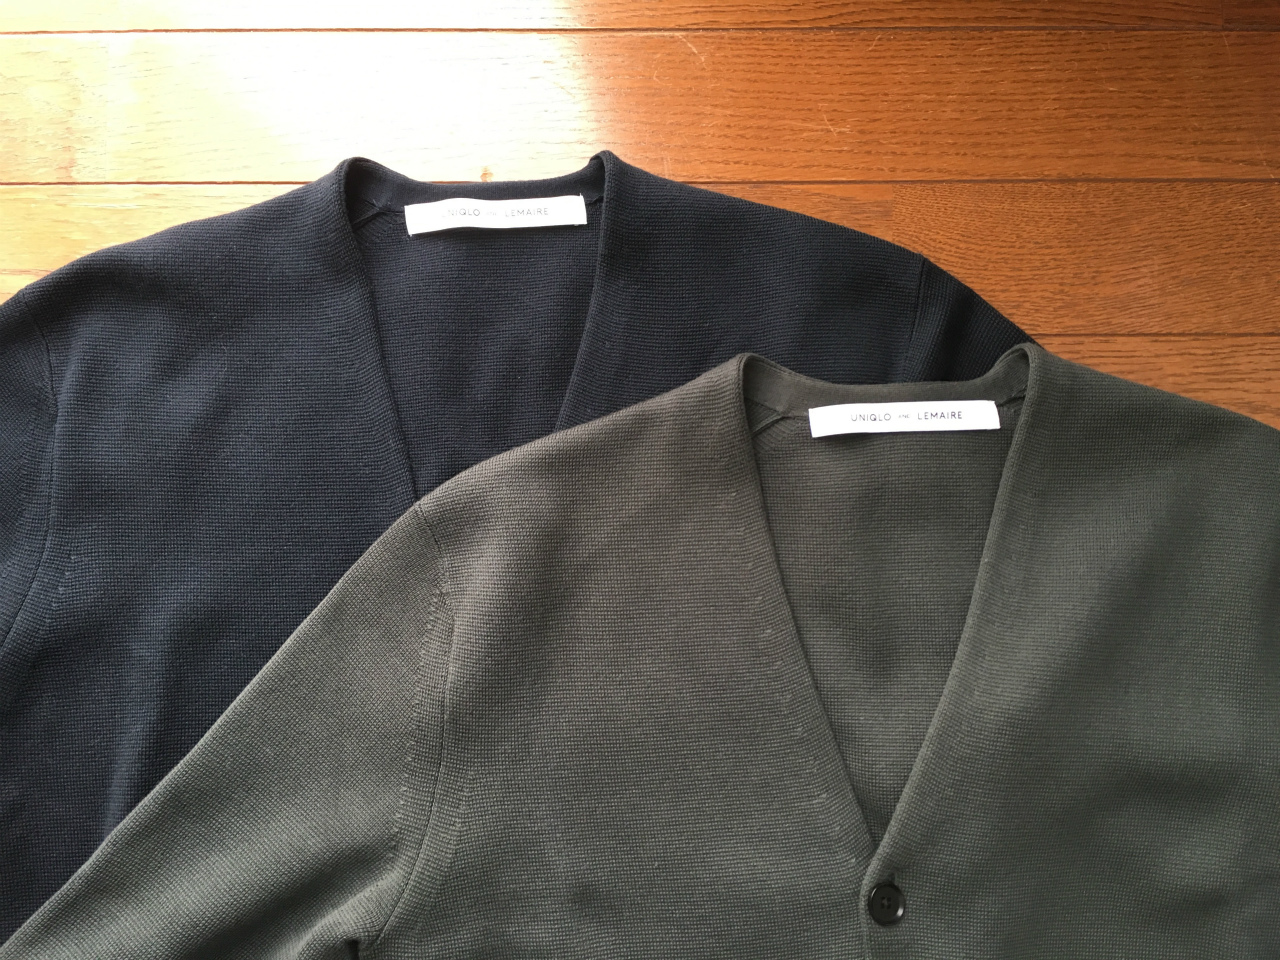 1239-201604_UNIQLO AND LEMAIRE 02